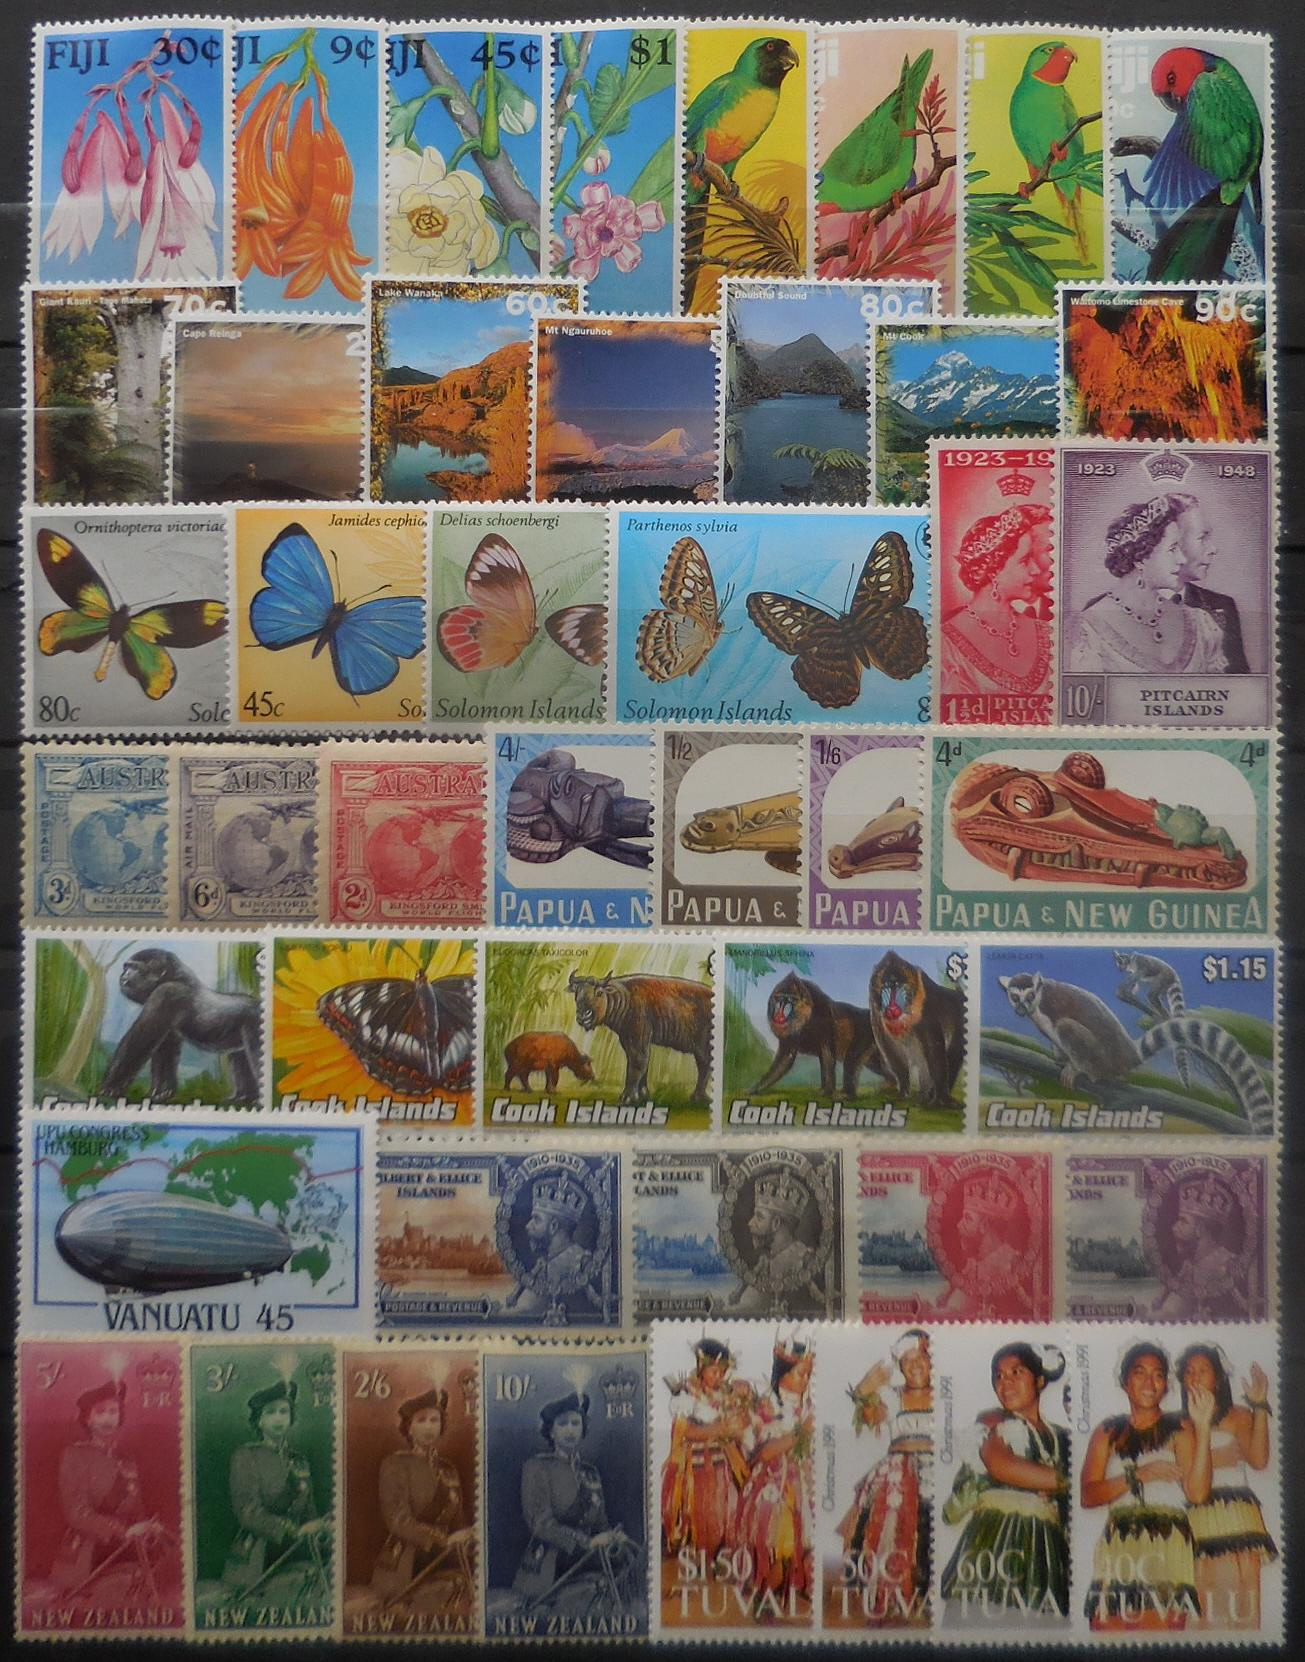 British pacific stamps for collectors on approval